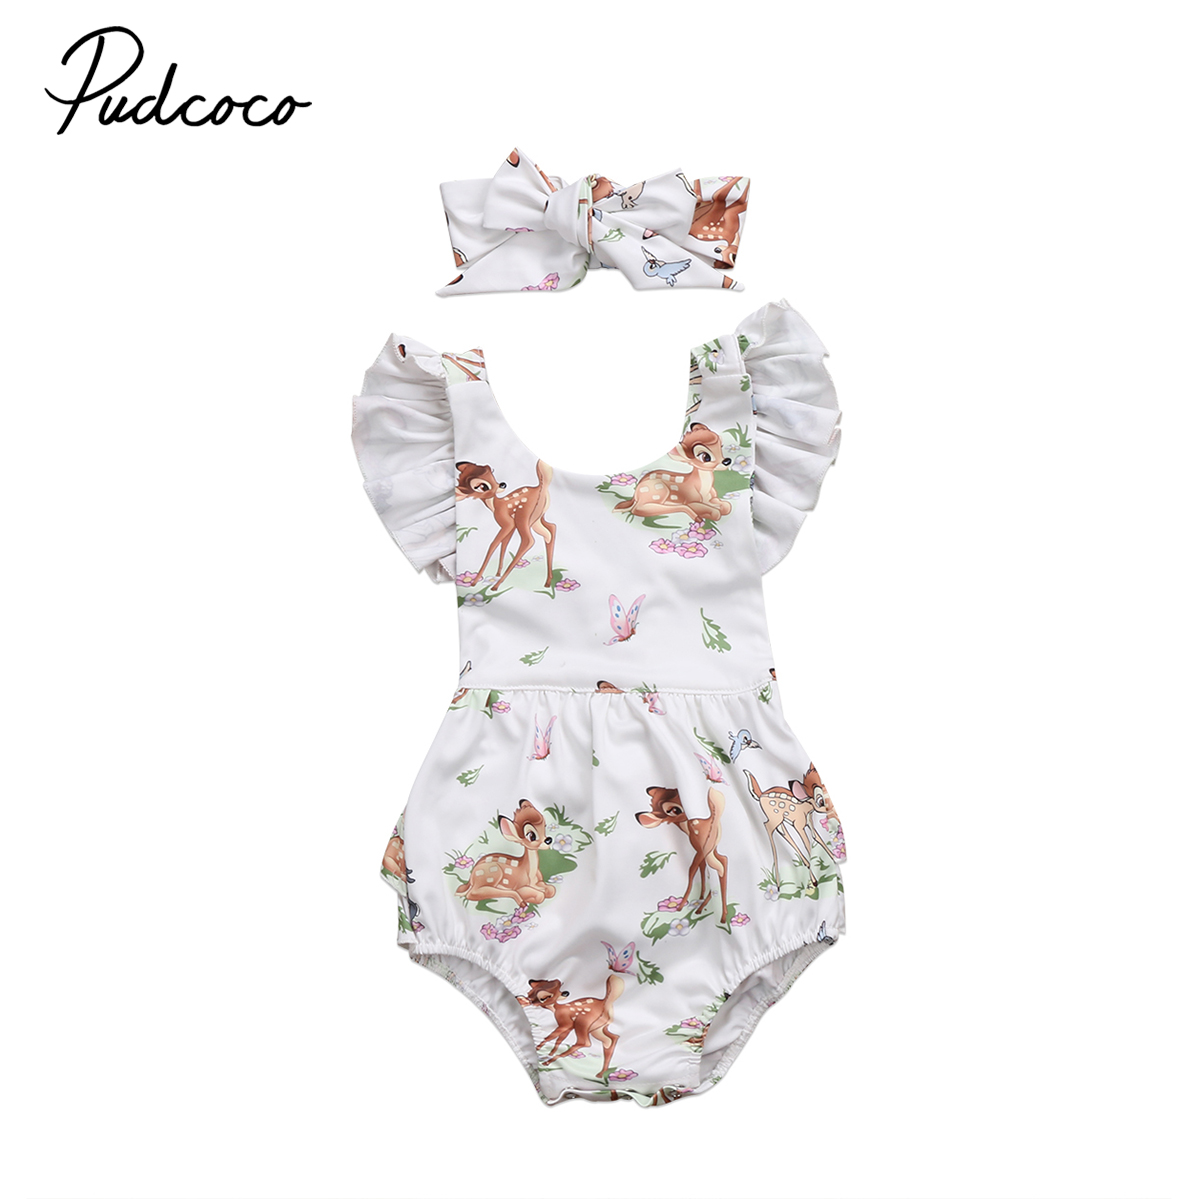 baby Clothing Toddler Infant Baby Girl Deer Sleeveless   Romper   Jumpsuit baby Cotton Clothes Outfit 0-2Y